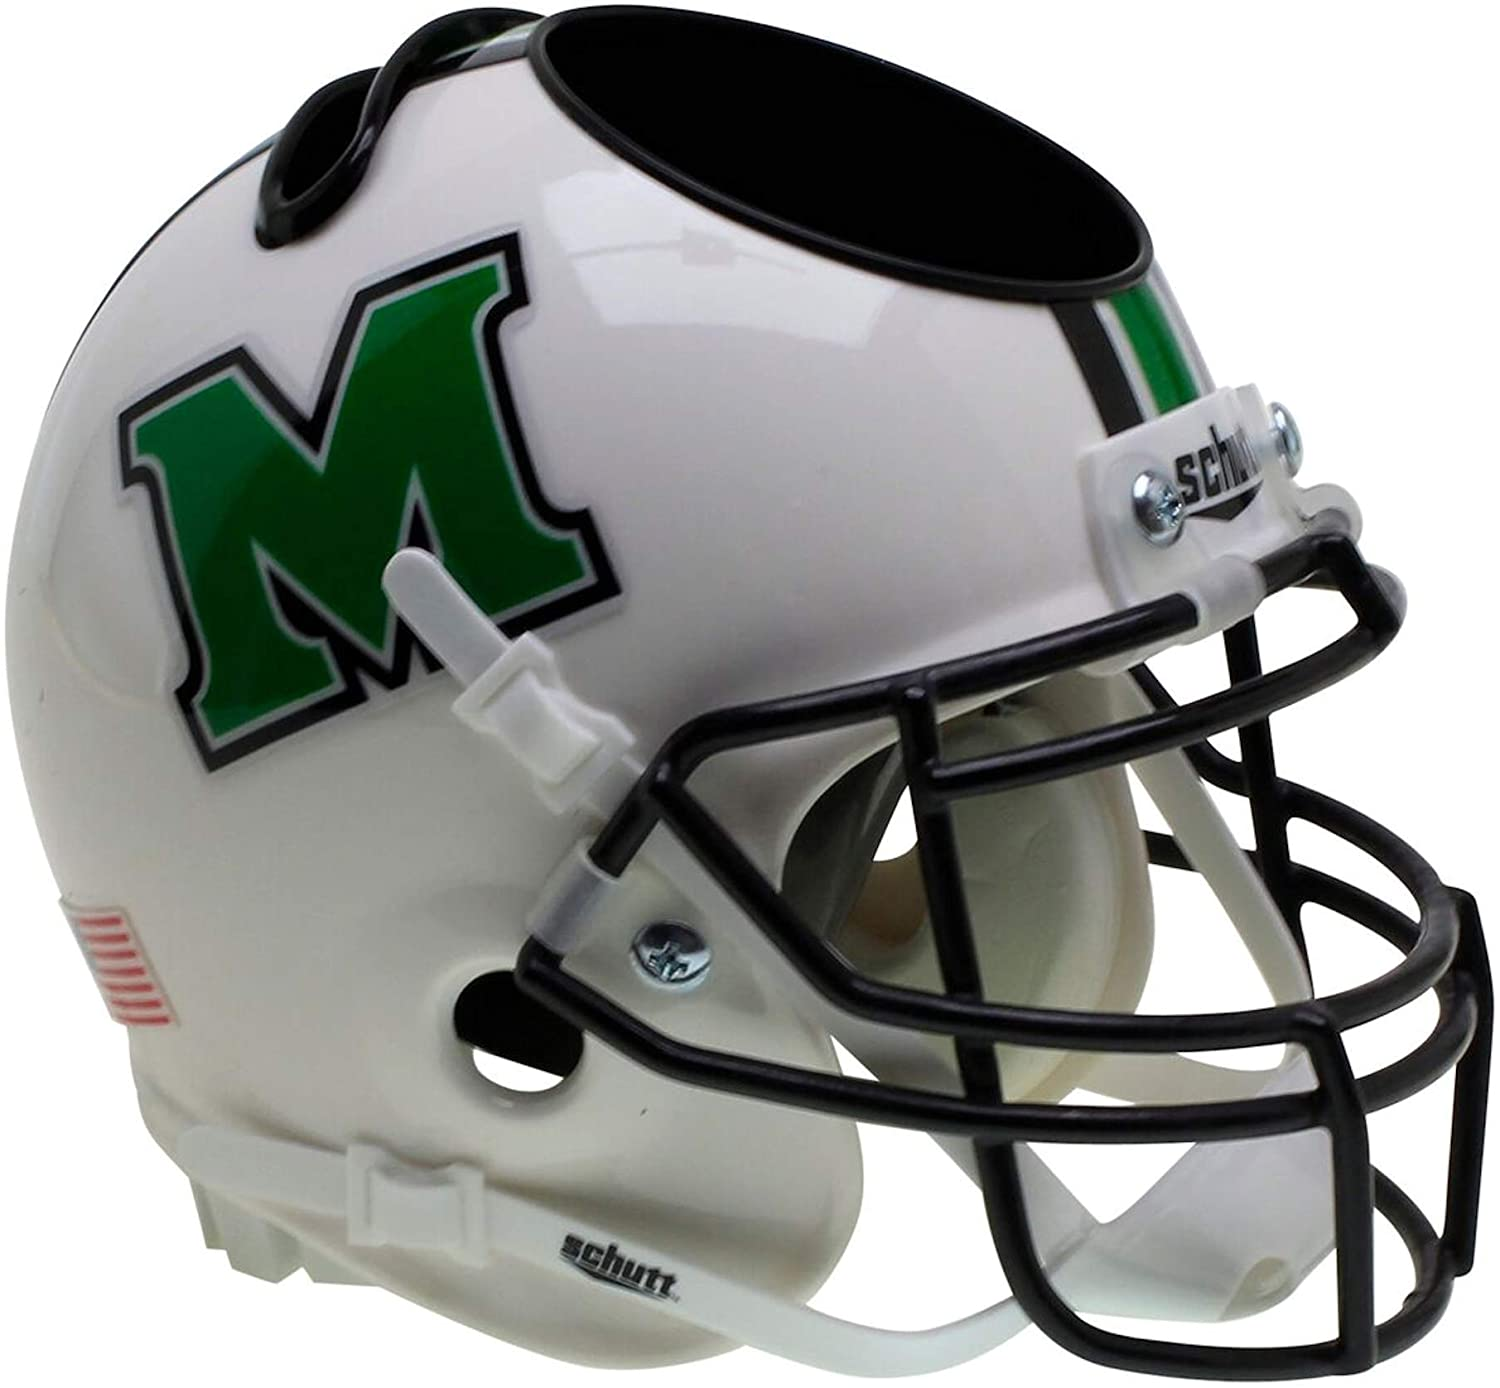 Schutt NCAA Marshall Thundering Herd Football Helmet Desk Caddy